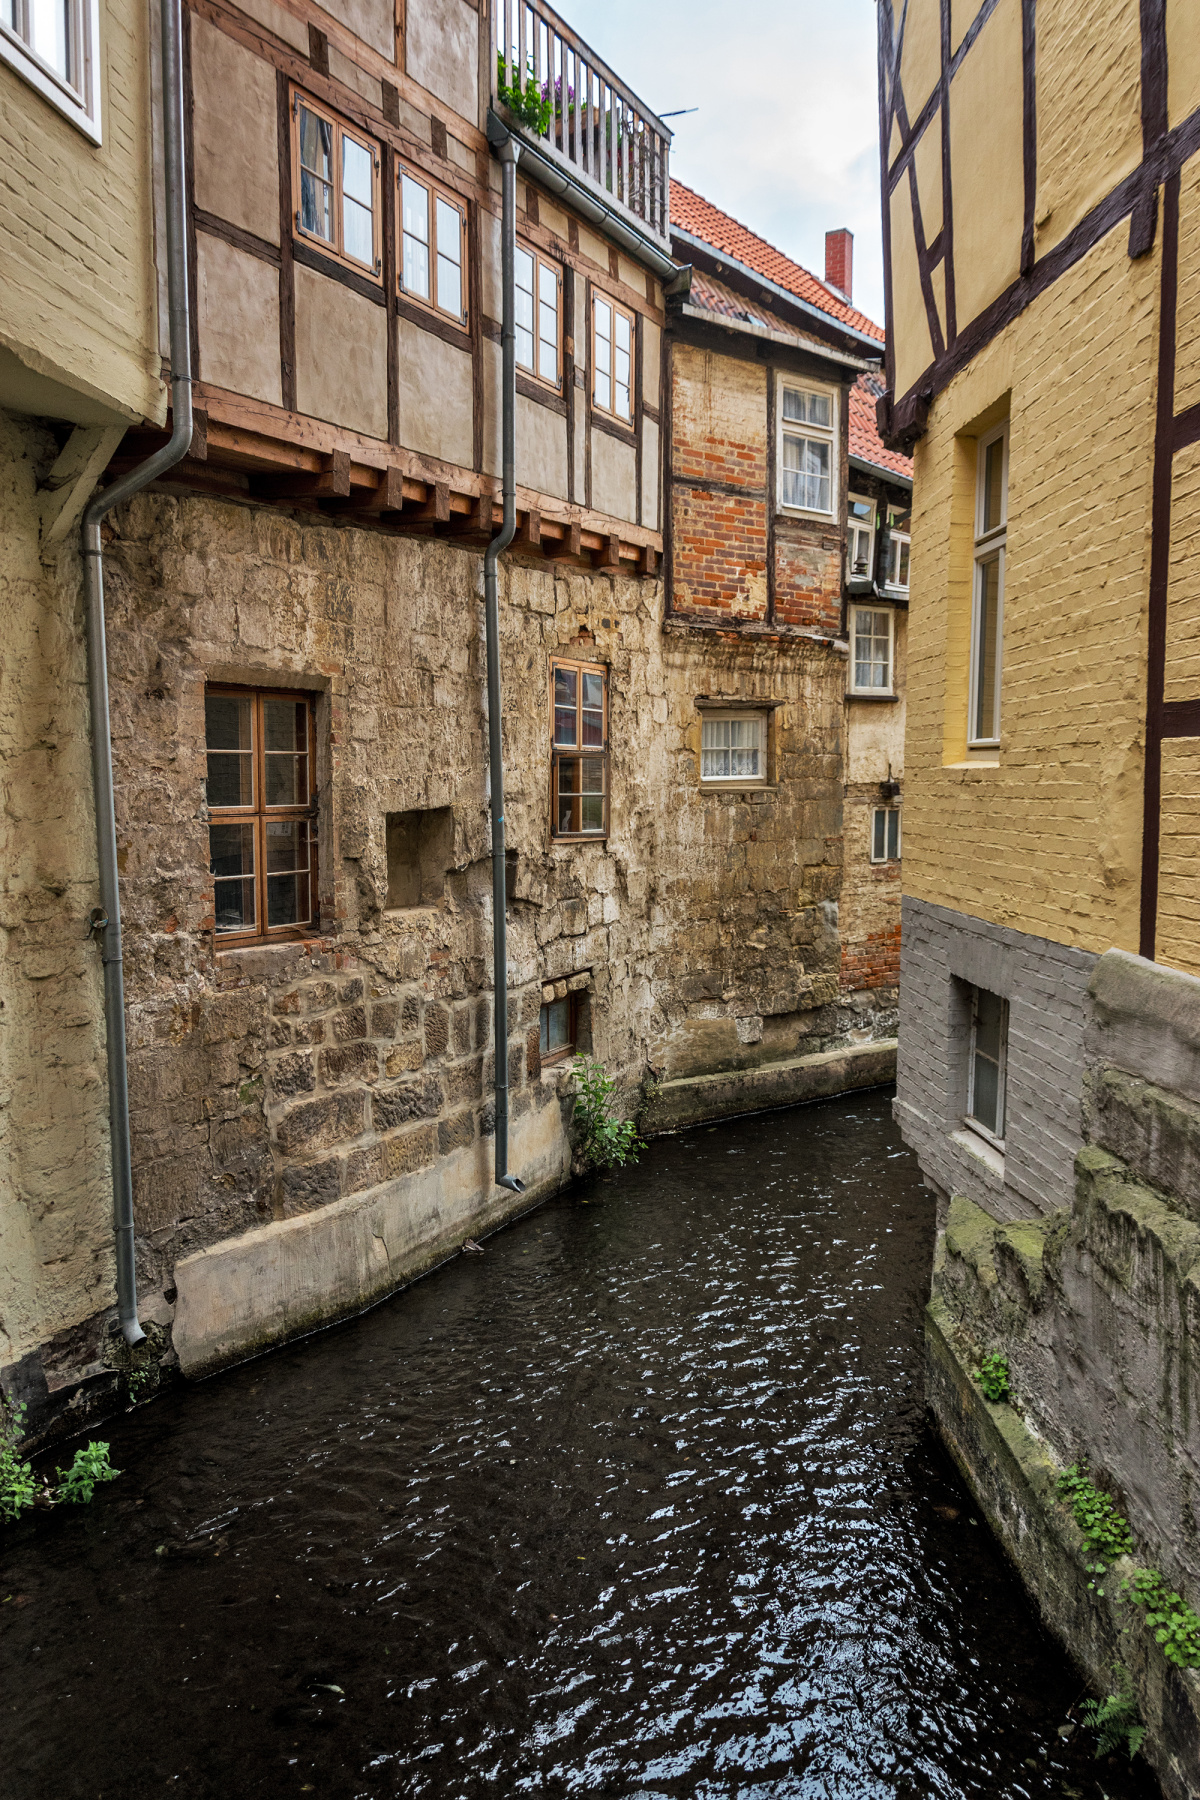 The Canal in Quedlinburg